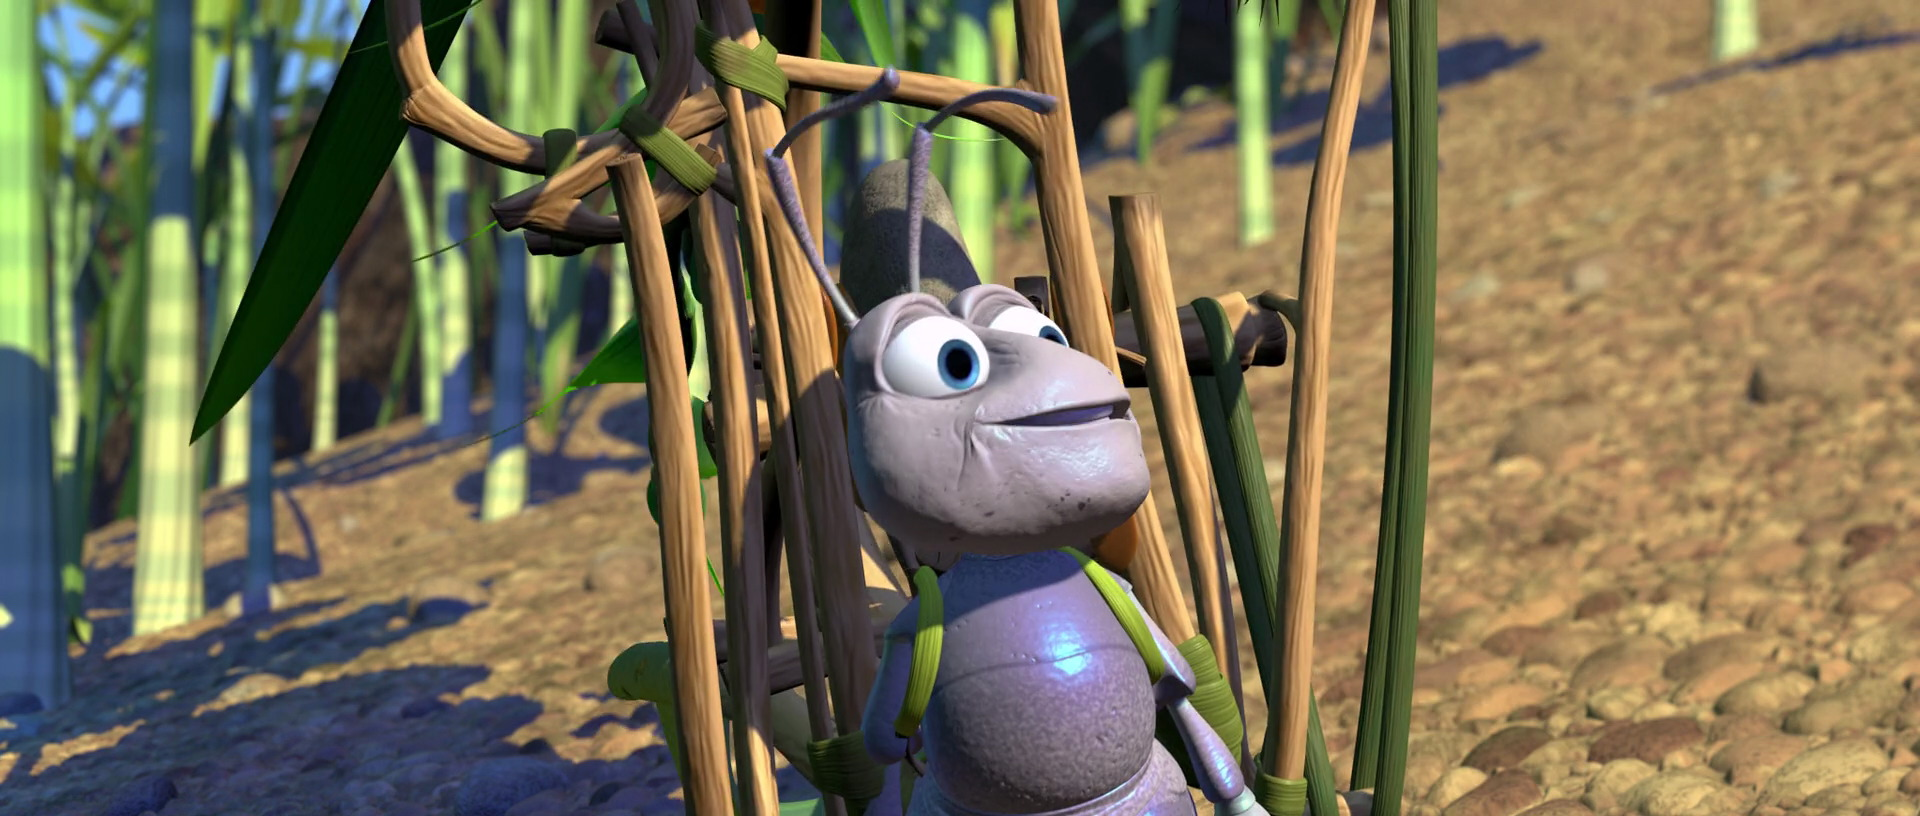 monsieur somme thorny pixar disney personnage character 1001 pattes a bug life